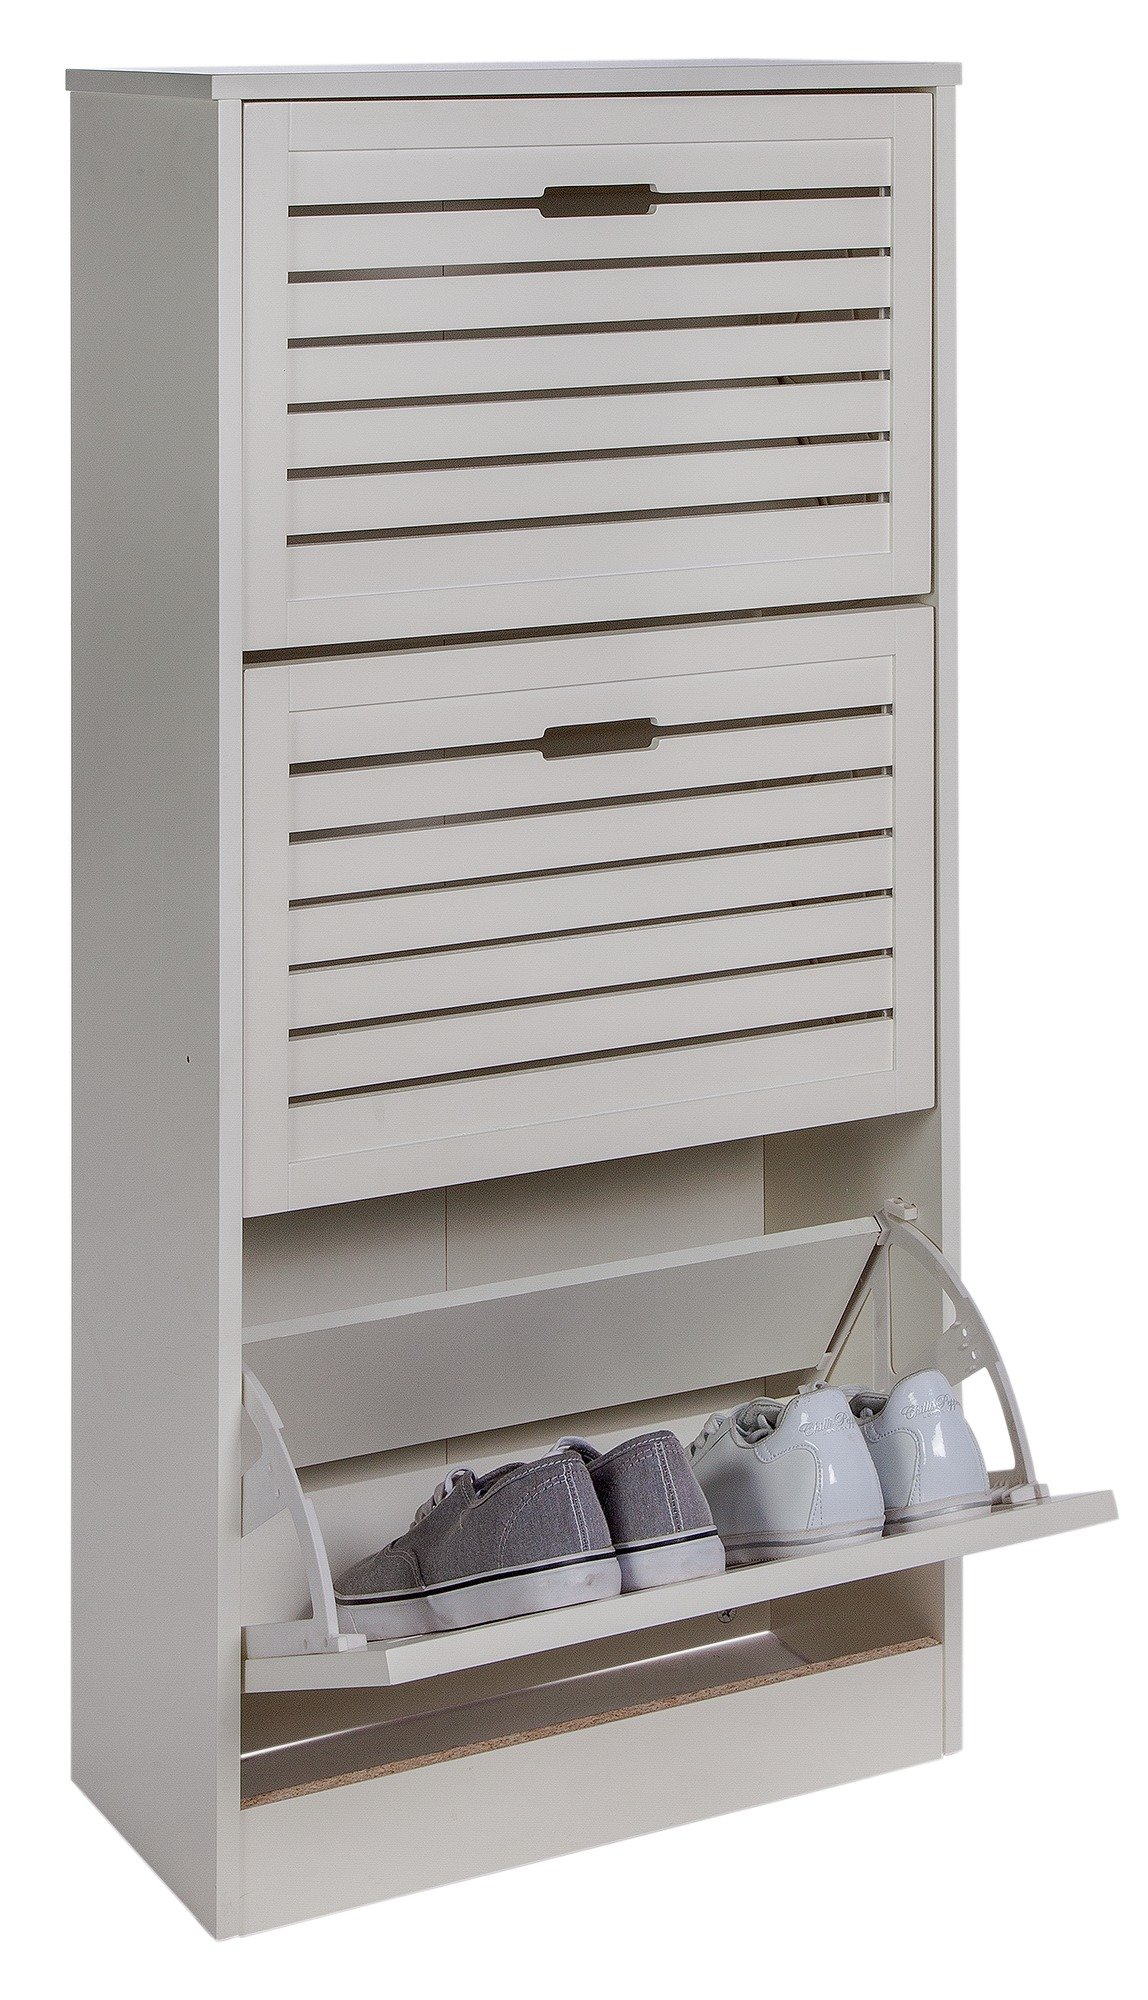 Exceptional HOME Hereford Shoe Storage Cabinet   White Part 15